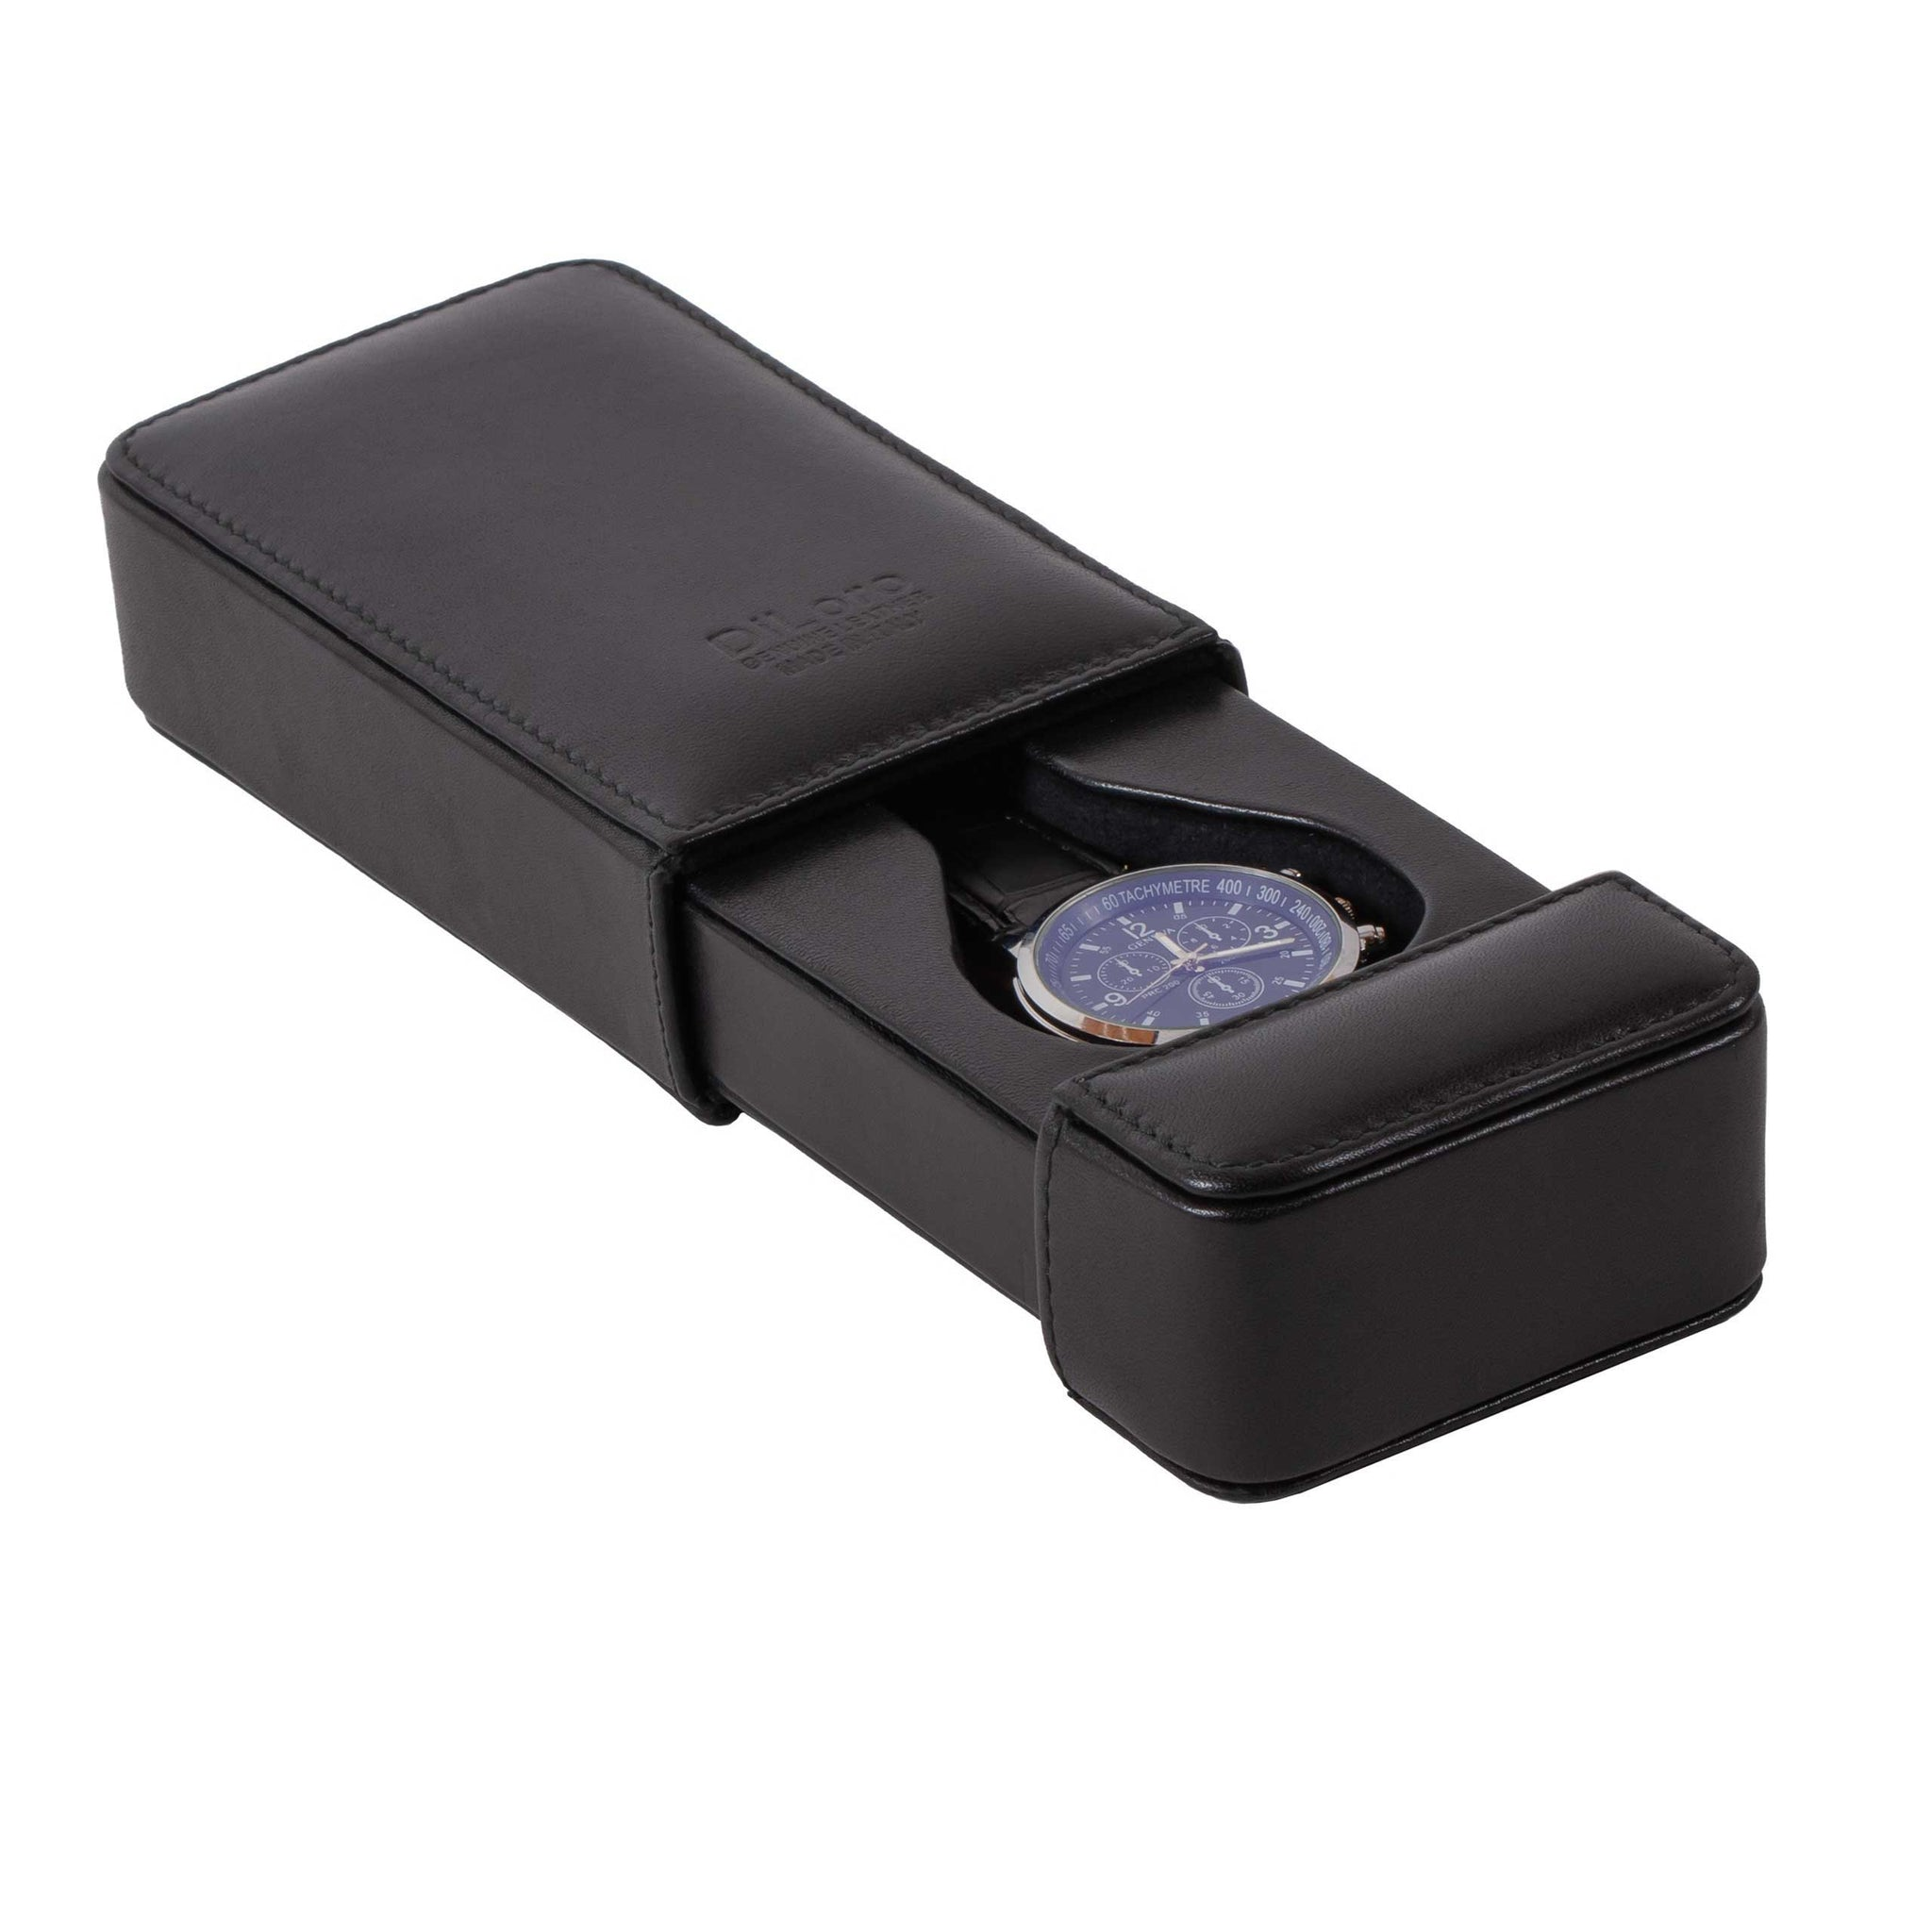 DiLoro Italian Leather Single Travel Watch Case Holder in Black Made in Italy - Open View with Men's Wrist Watch (not included)